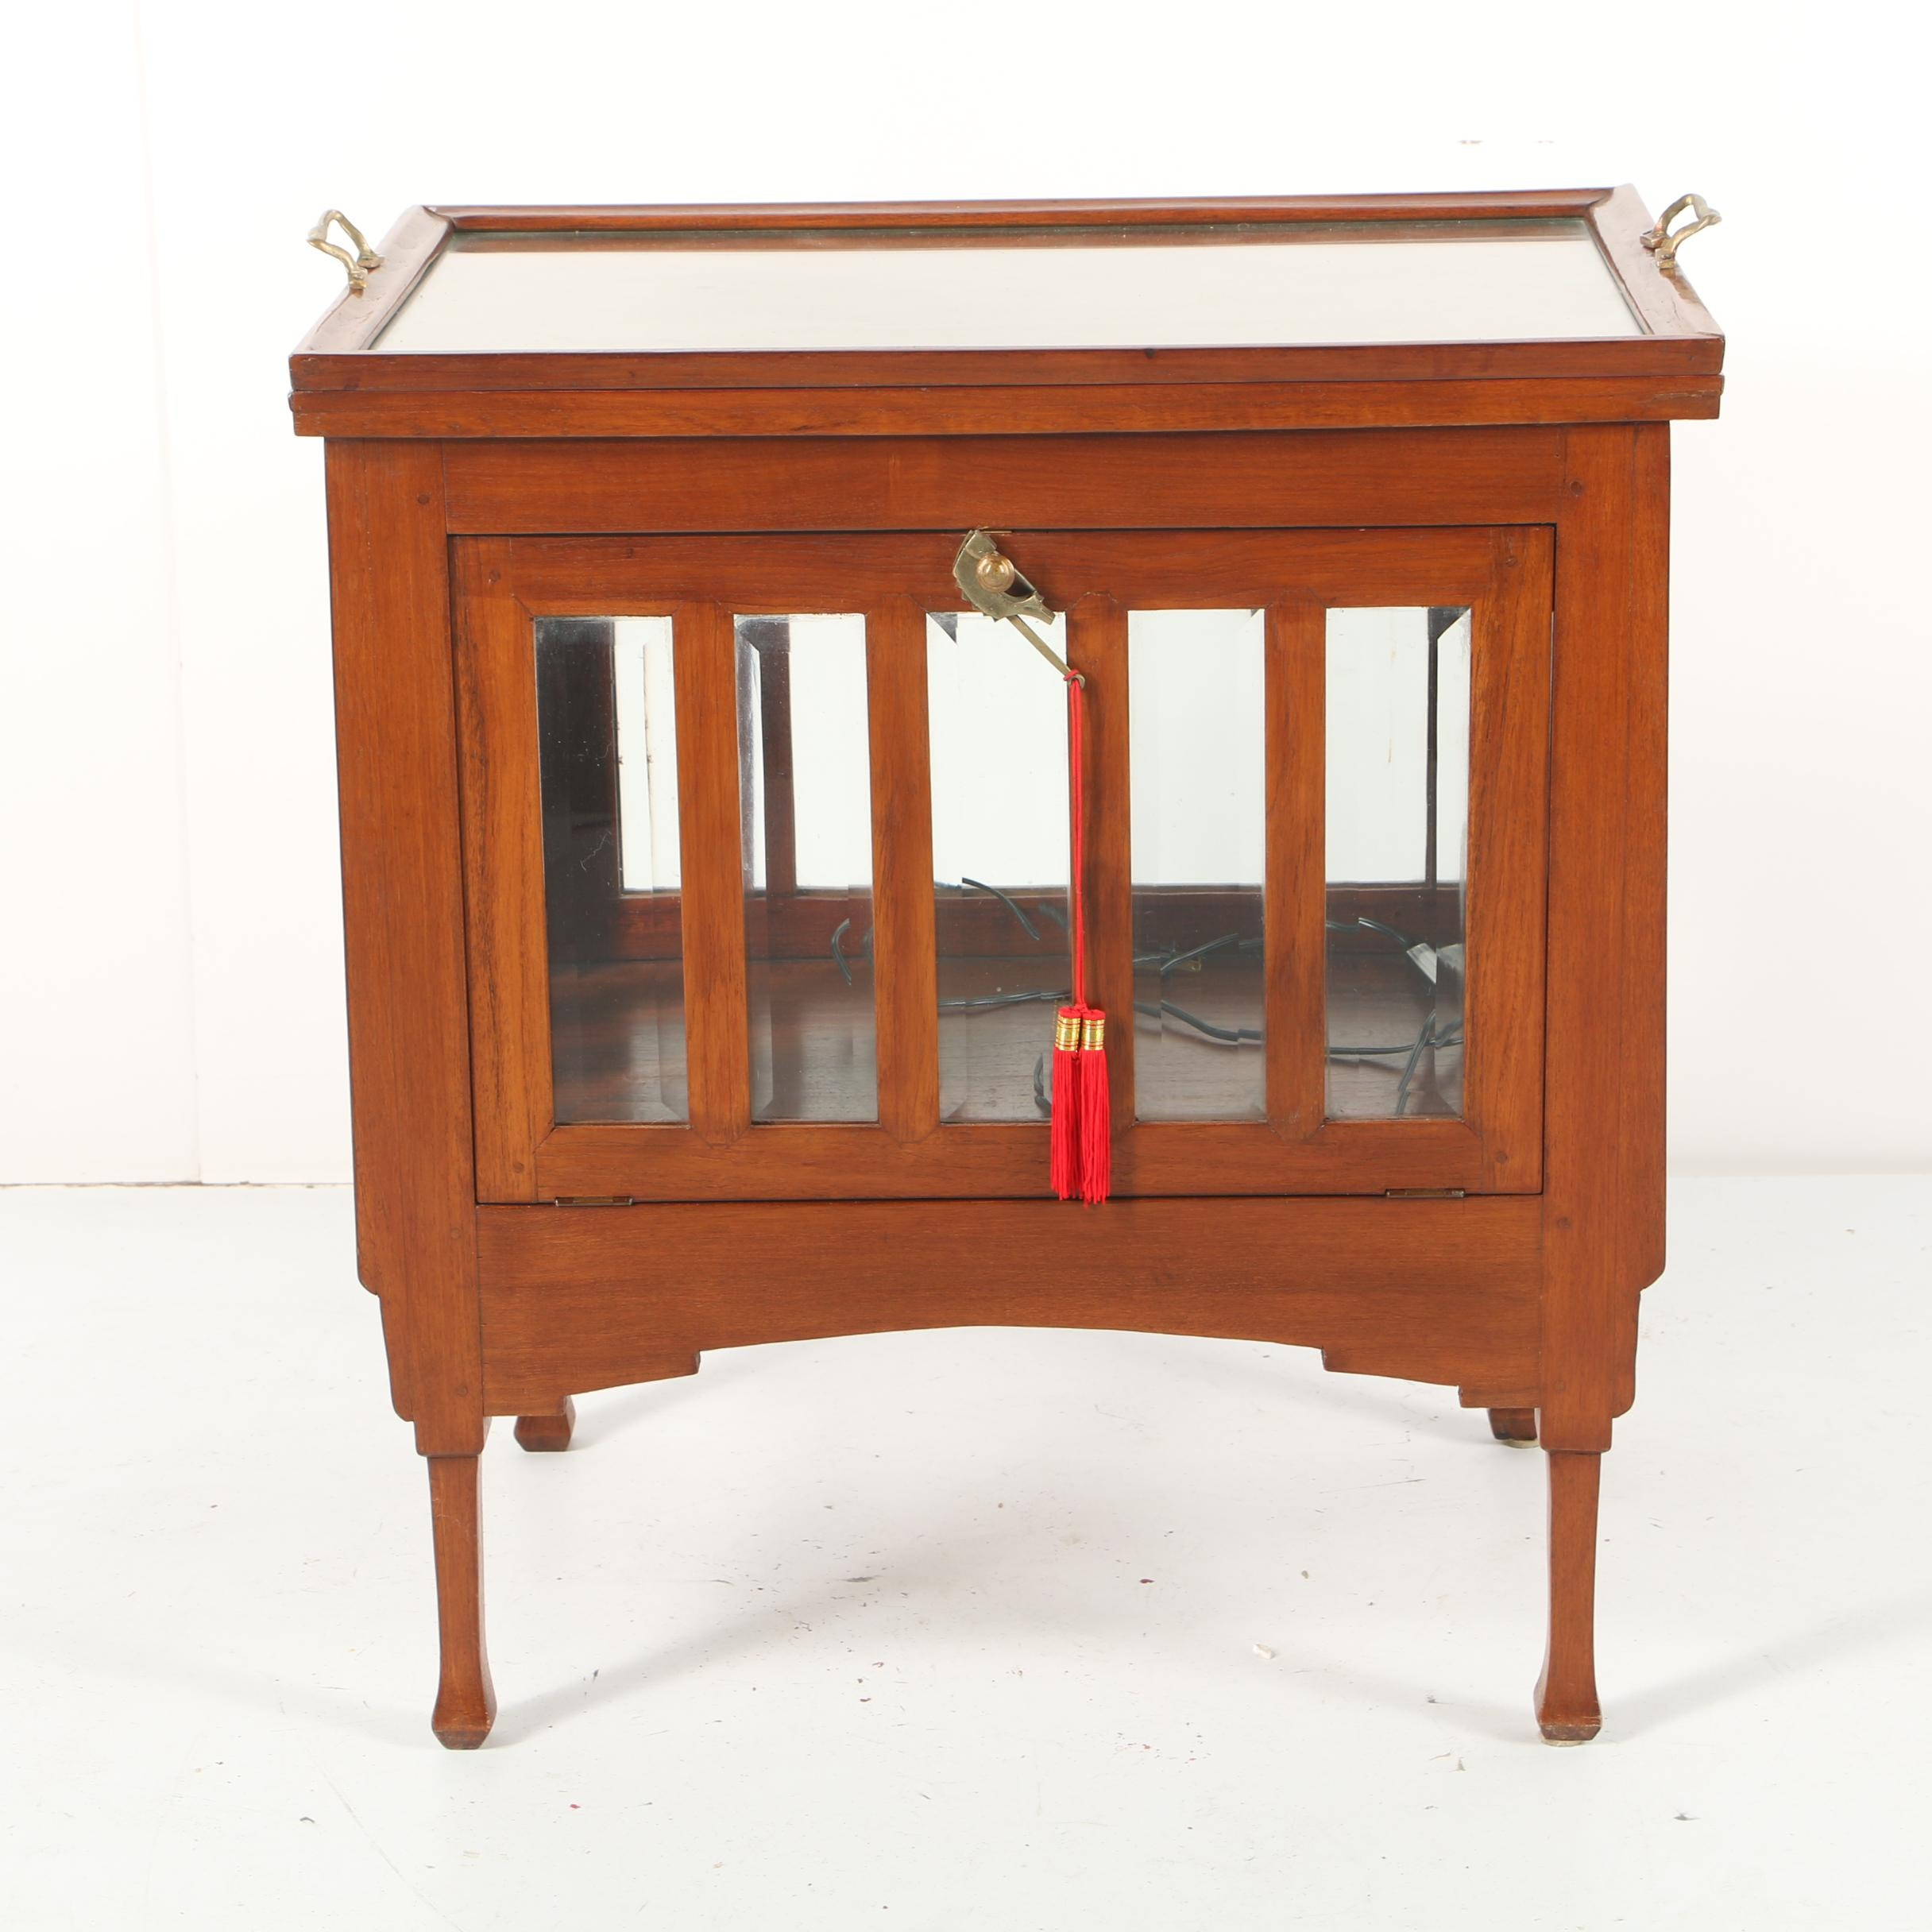 Vintage Vitrine Table with Tray